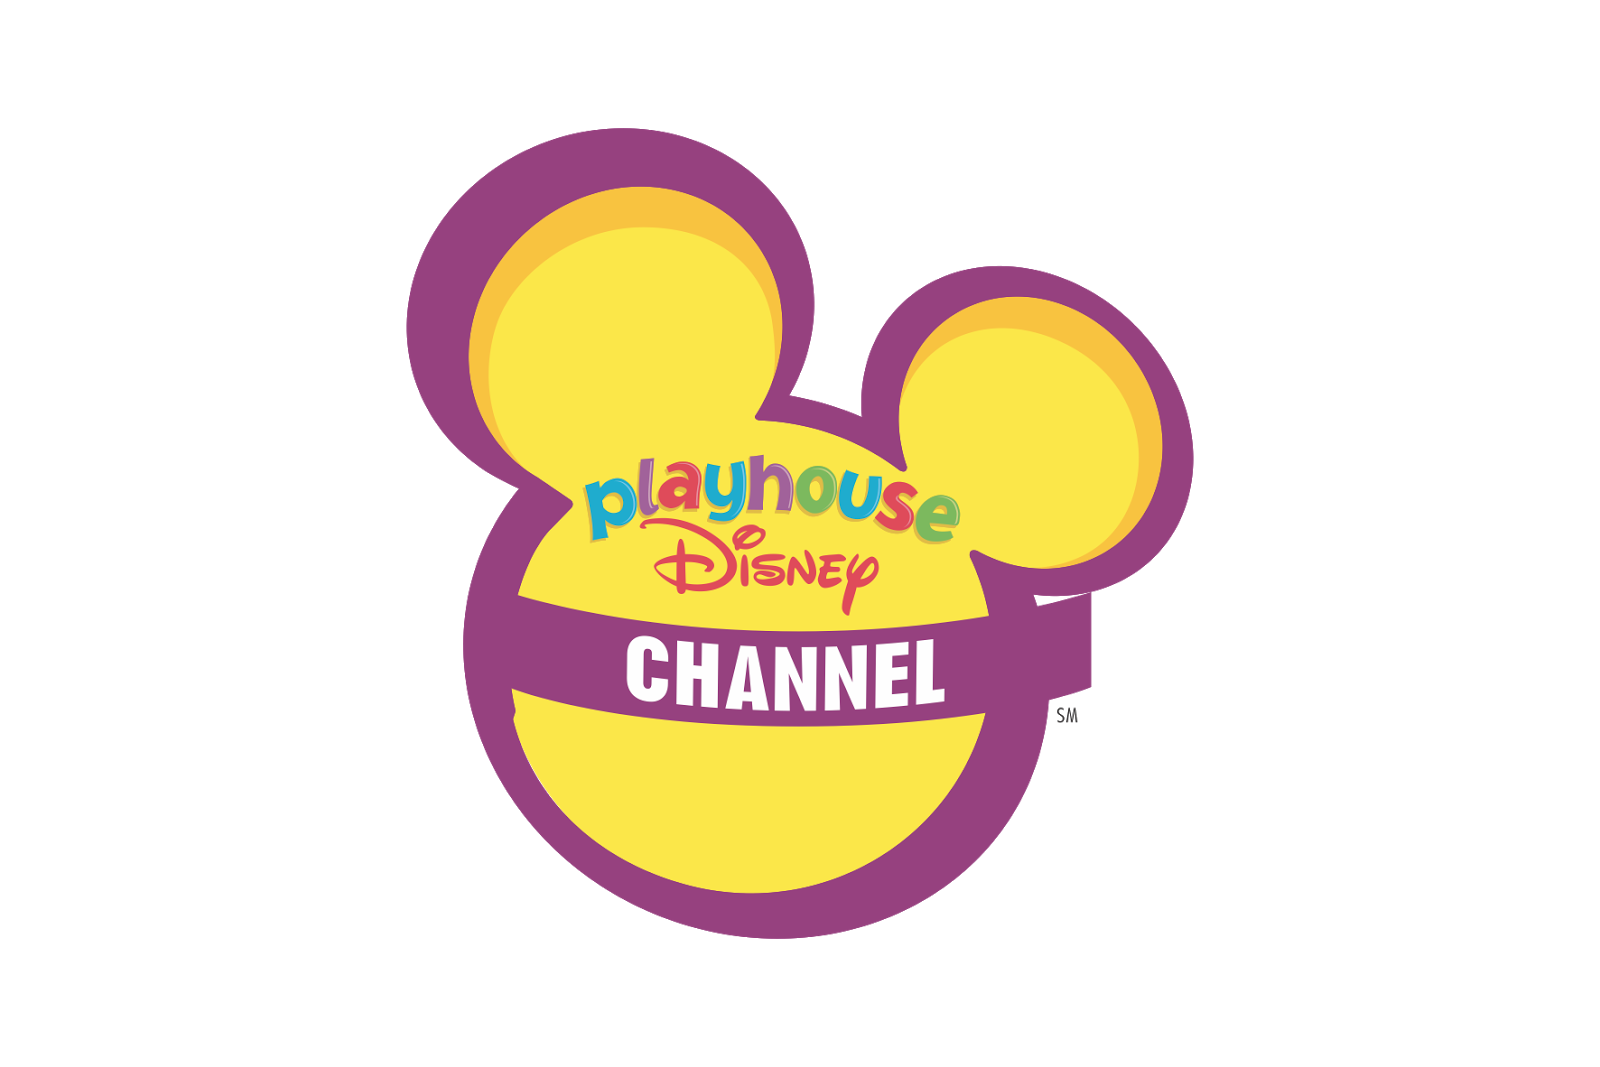 Logo Playhouse_Disney_Channel.png